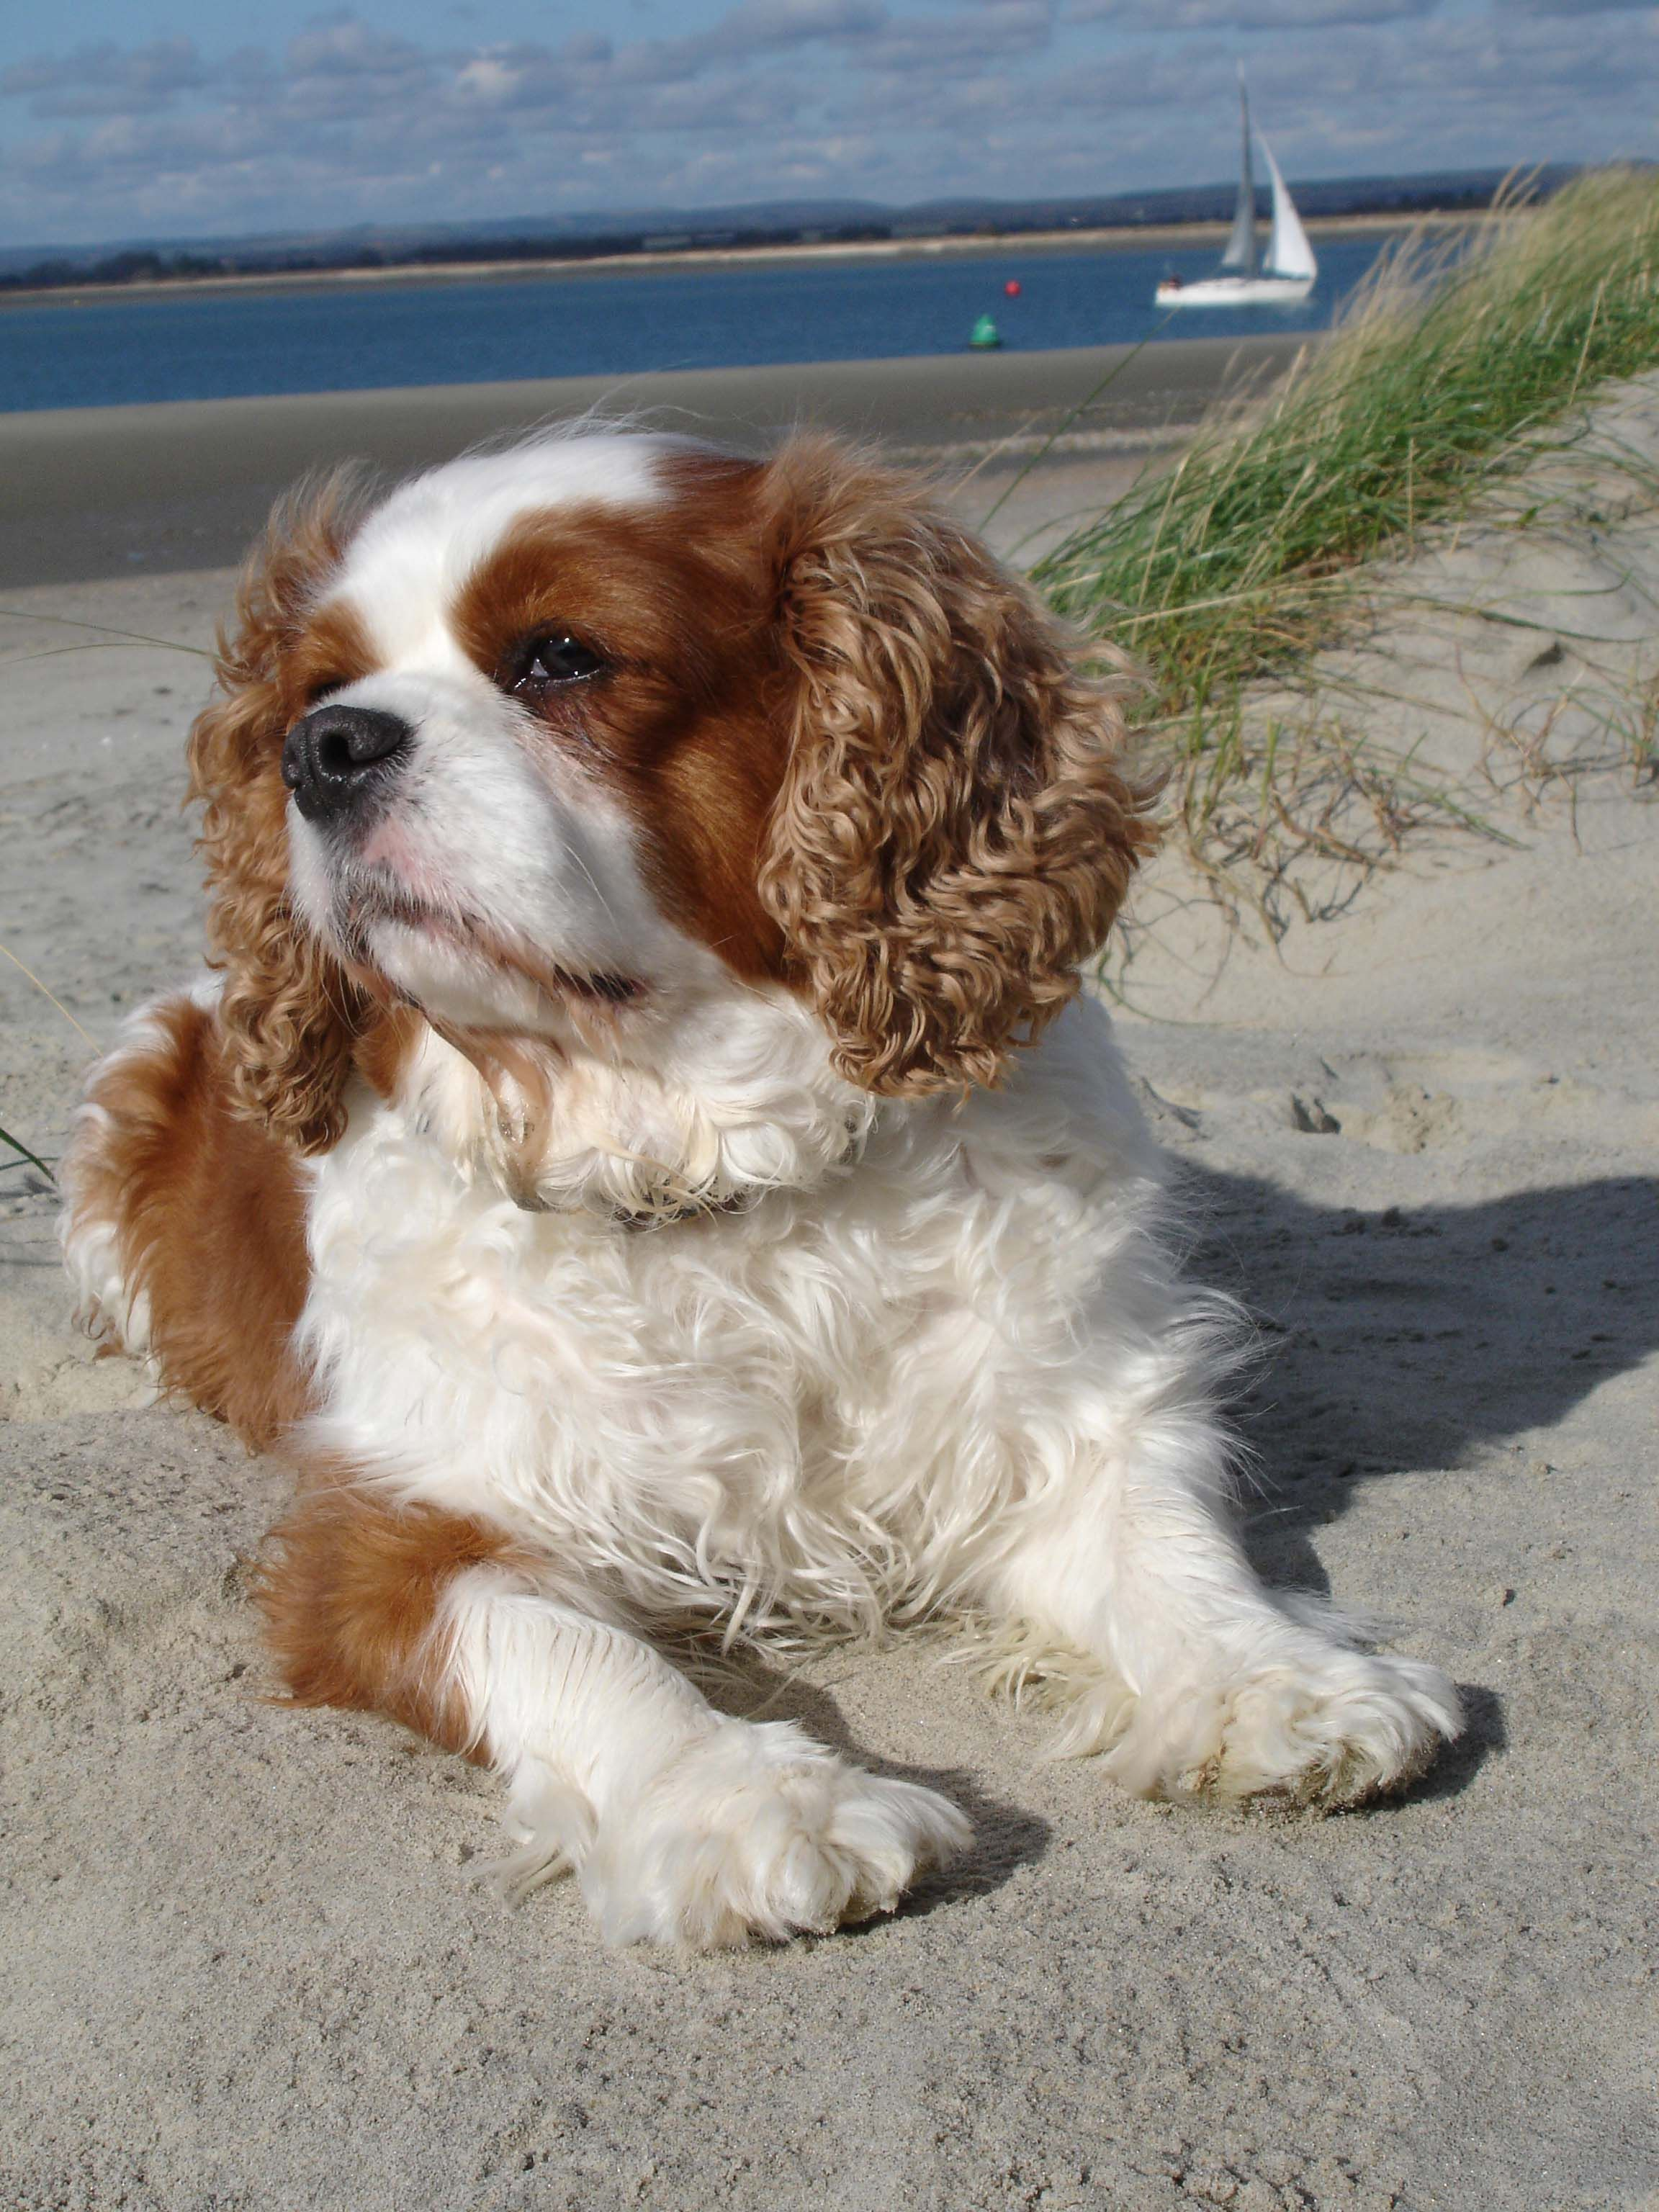 Cavalier king charles spaniels are good for apartment life